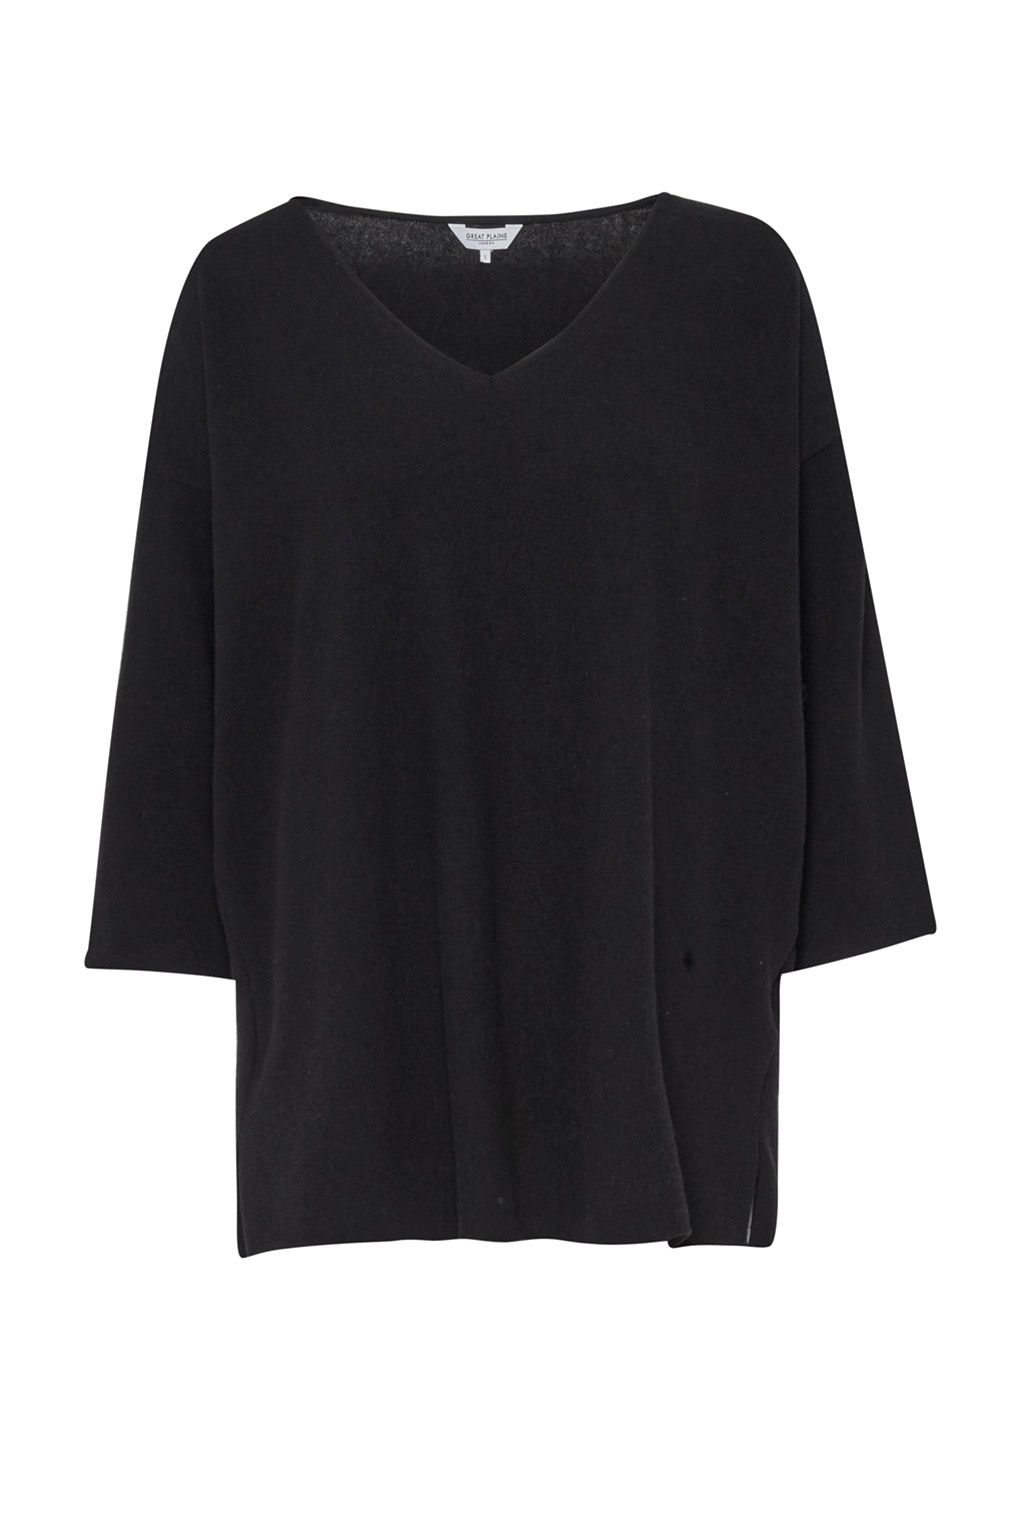 Great Plains Kitten Play V Neck Slouchy Top, Black